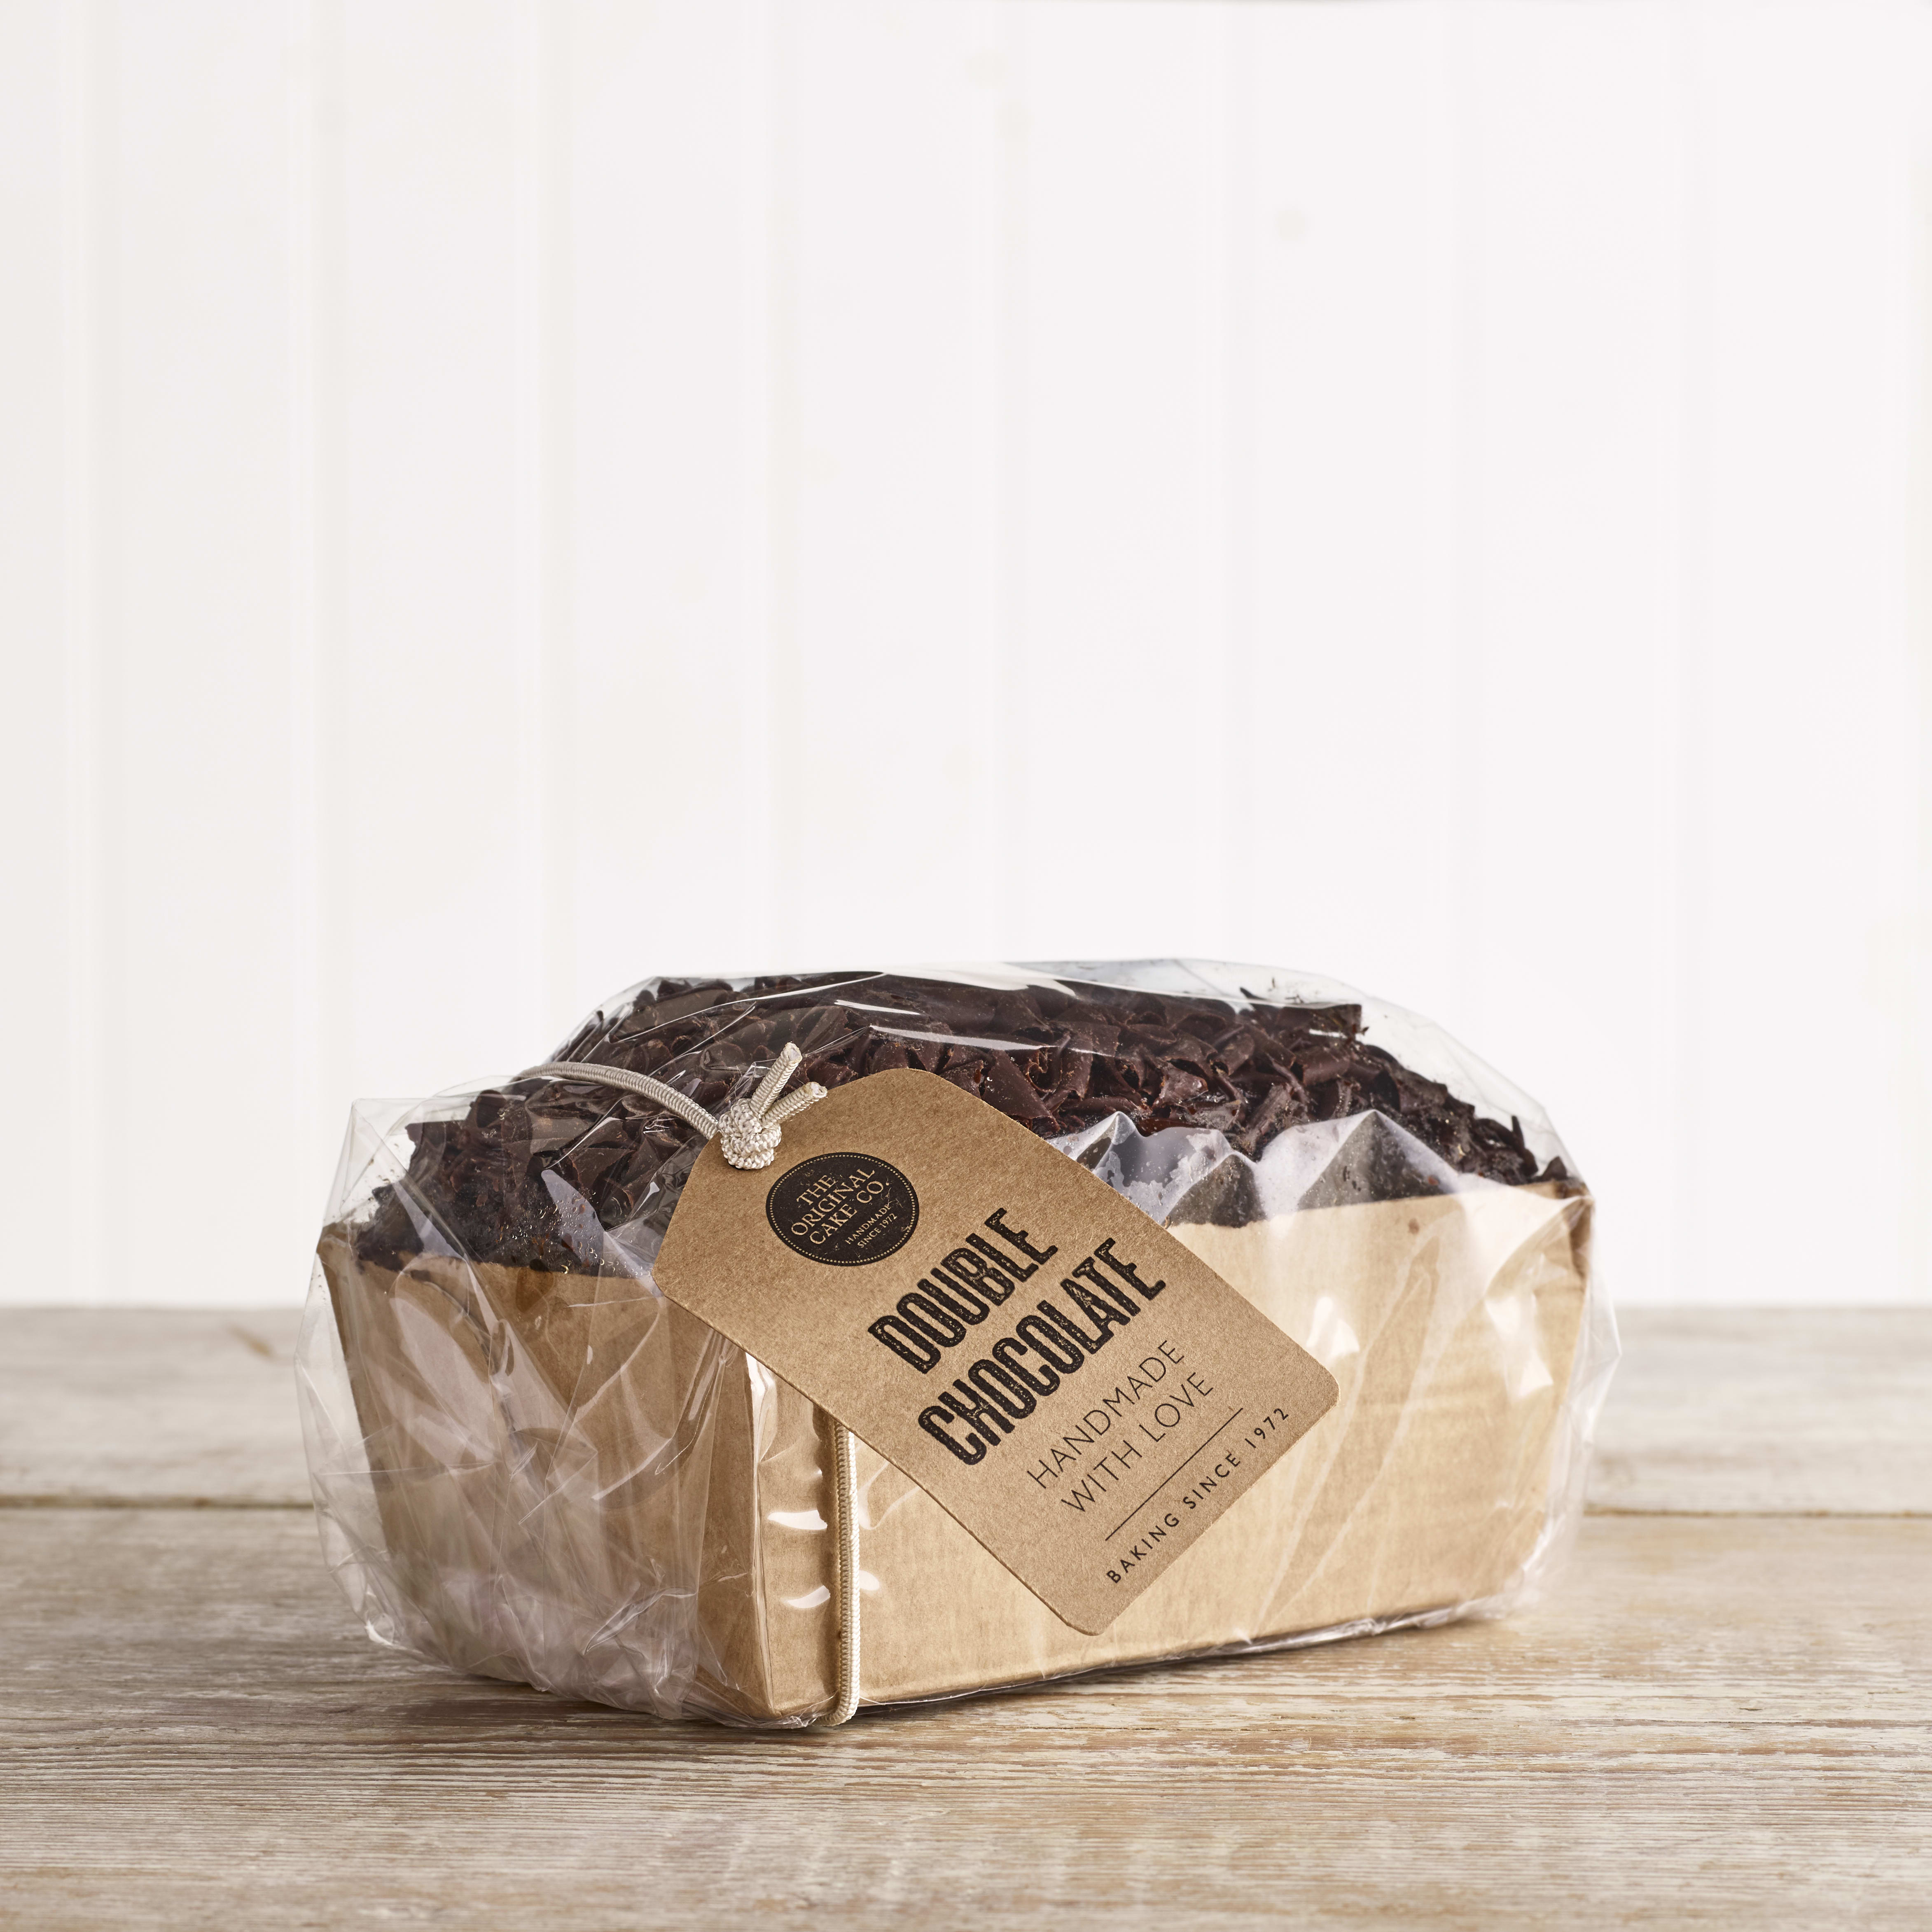 Original Cake Company Double Chocolate Sponge Loaf, 290g